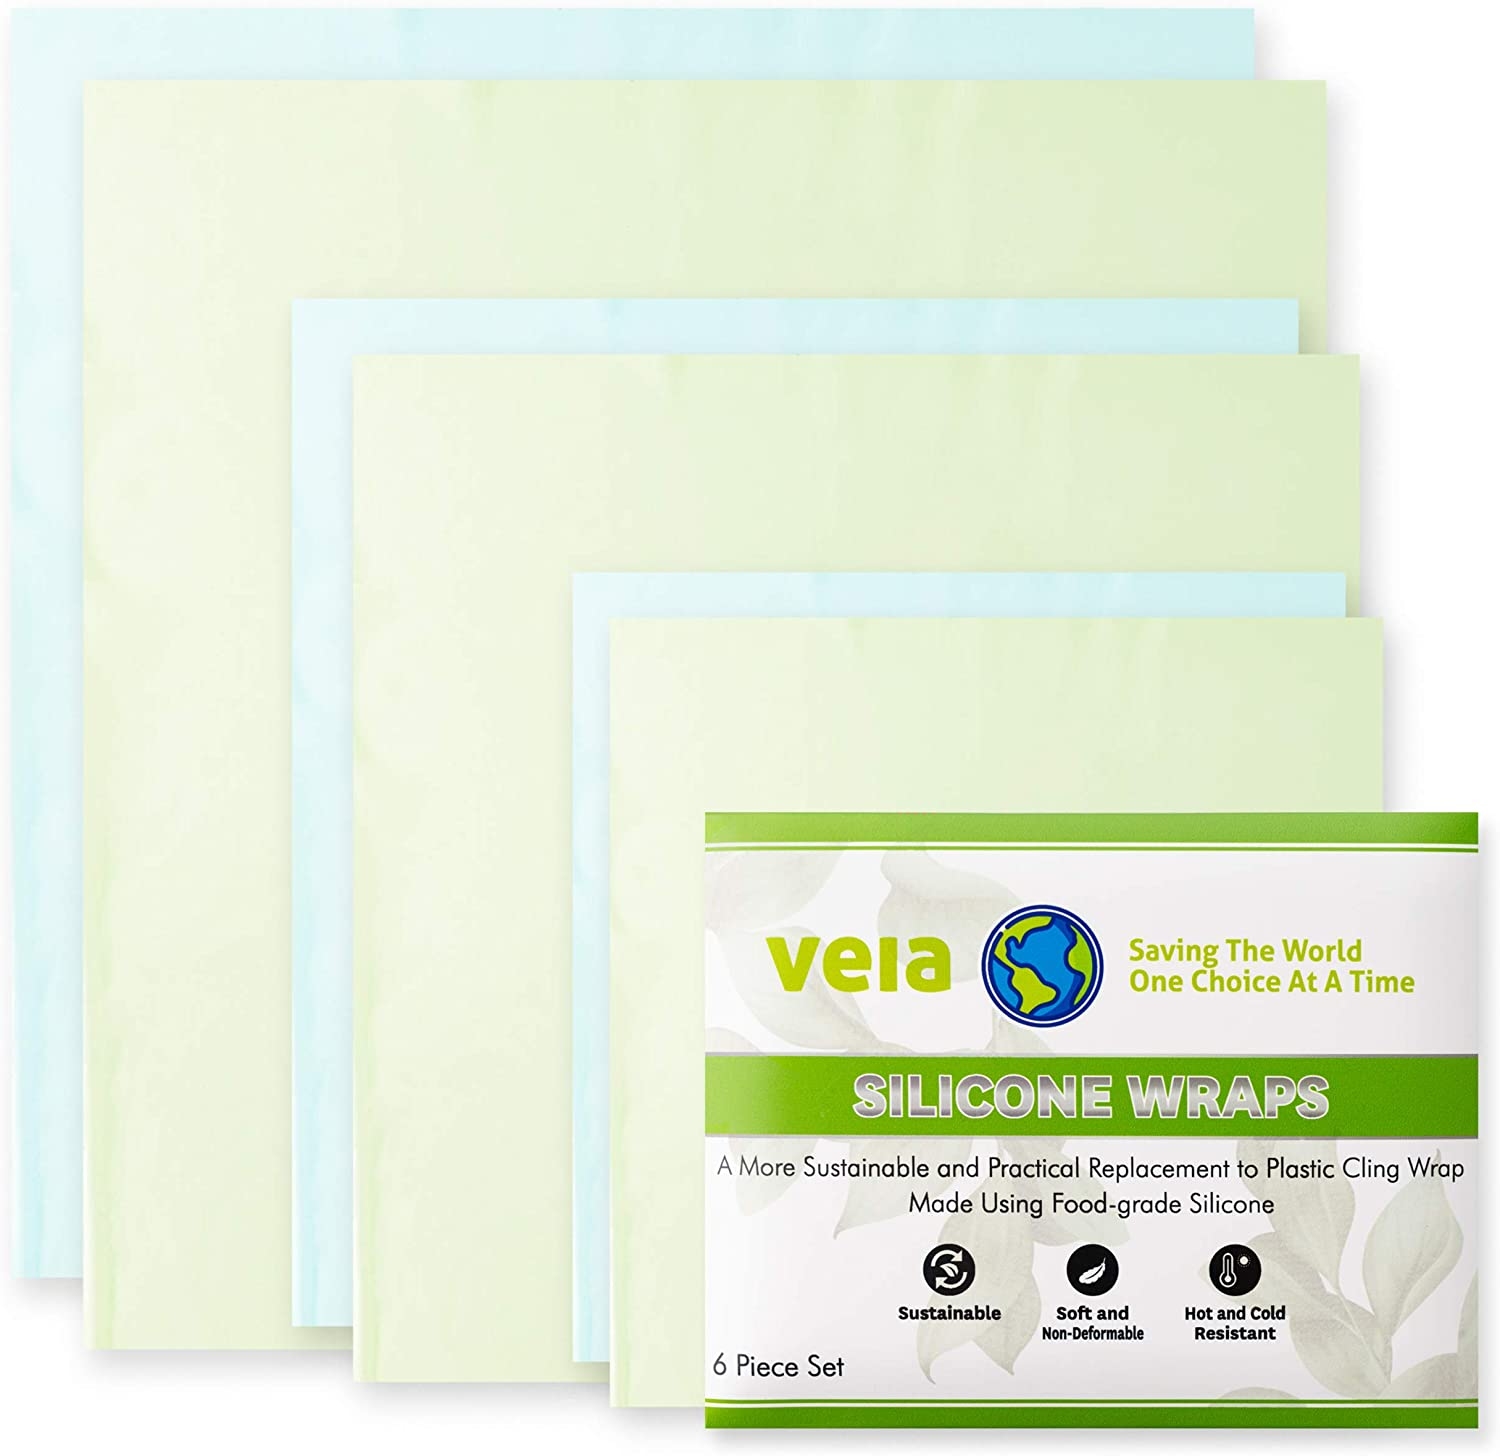 Veia Reusable Silicone Food Wrap (Set of 6) - Washable Sustainable BPA-Free and Clutter-Free Alternative To Plastic Cling Wrap And Microwave Cover